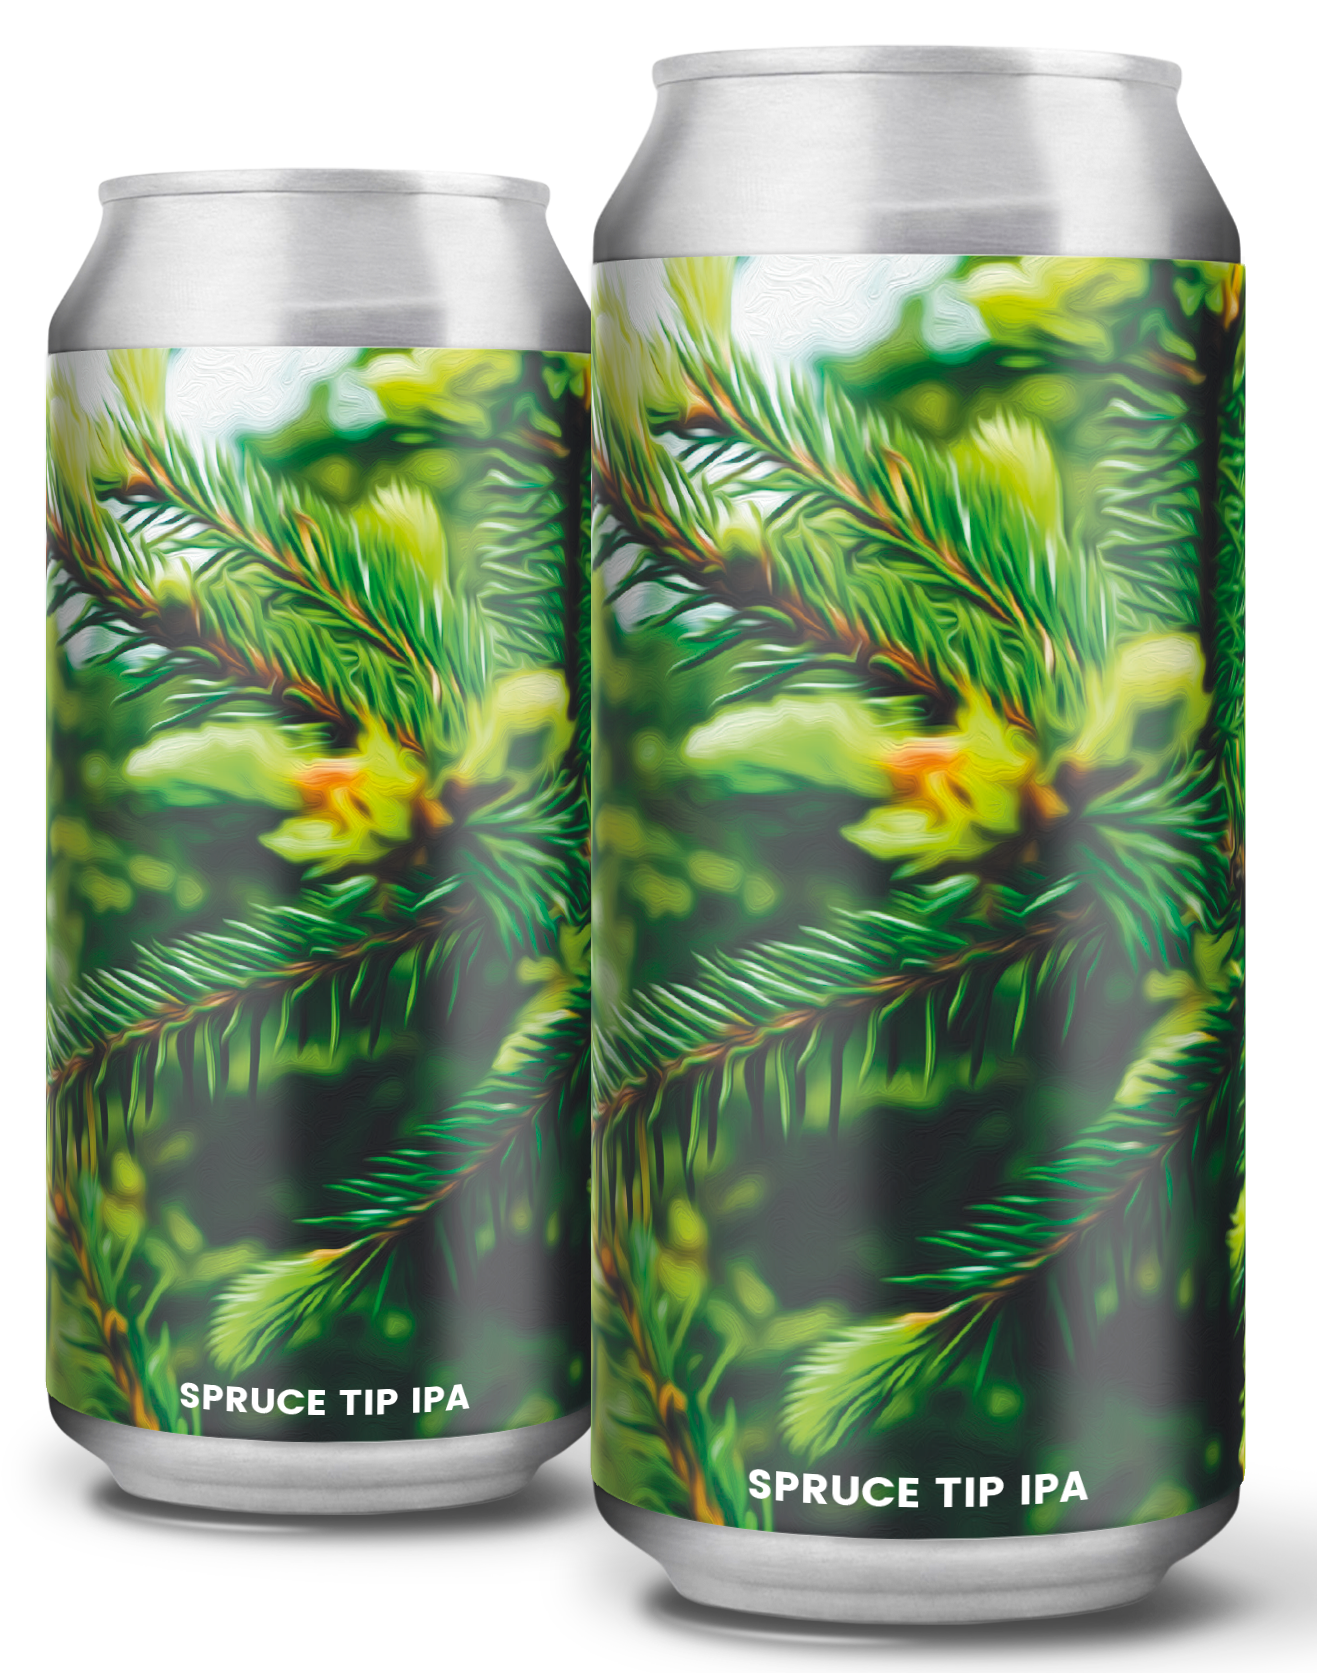 Now Is The Time (Spruce Tip IPA) -Alefarm